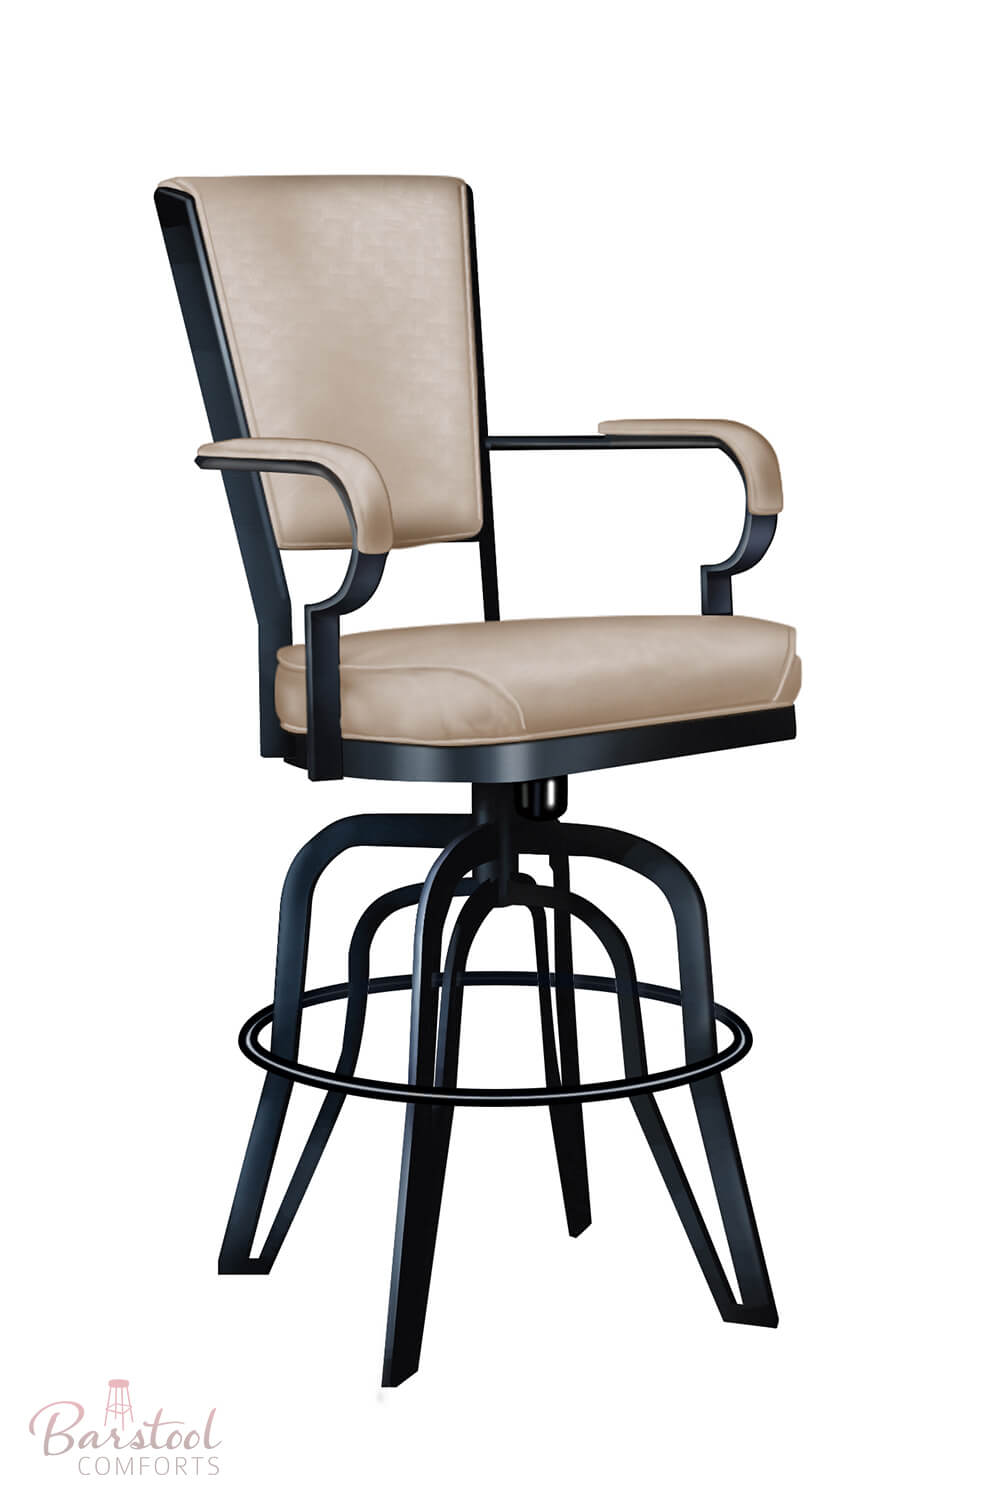 Remarkable Lisa Furniture 2545 Rocking Tilt Swivel Bar Stool Short Links Chair Design For Home Short Linksinfo